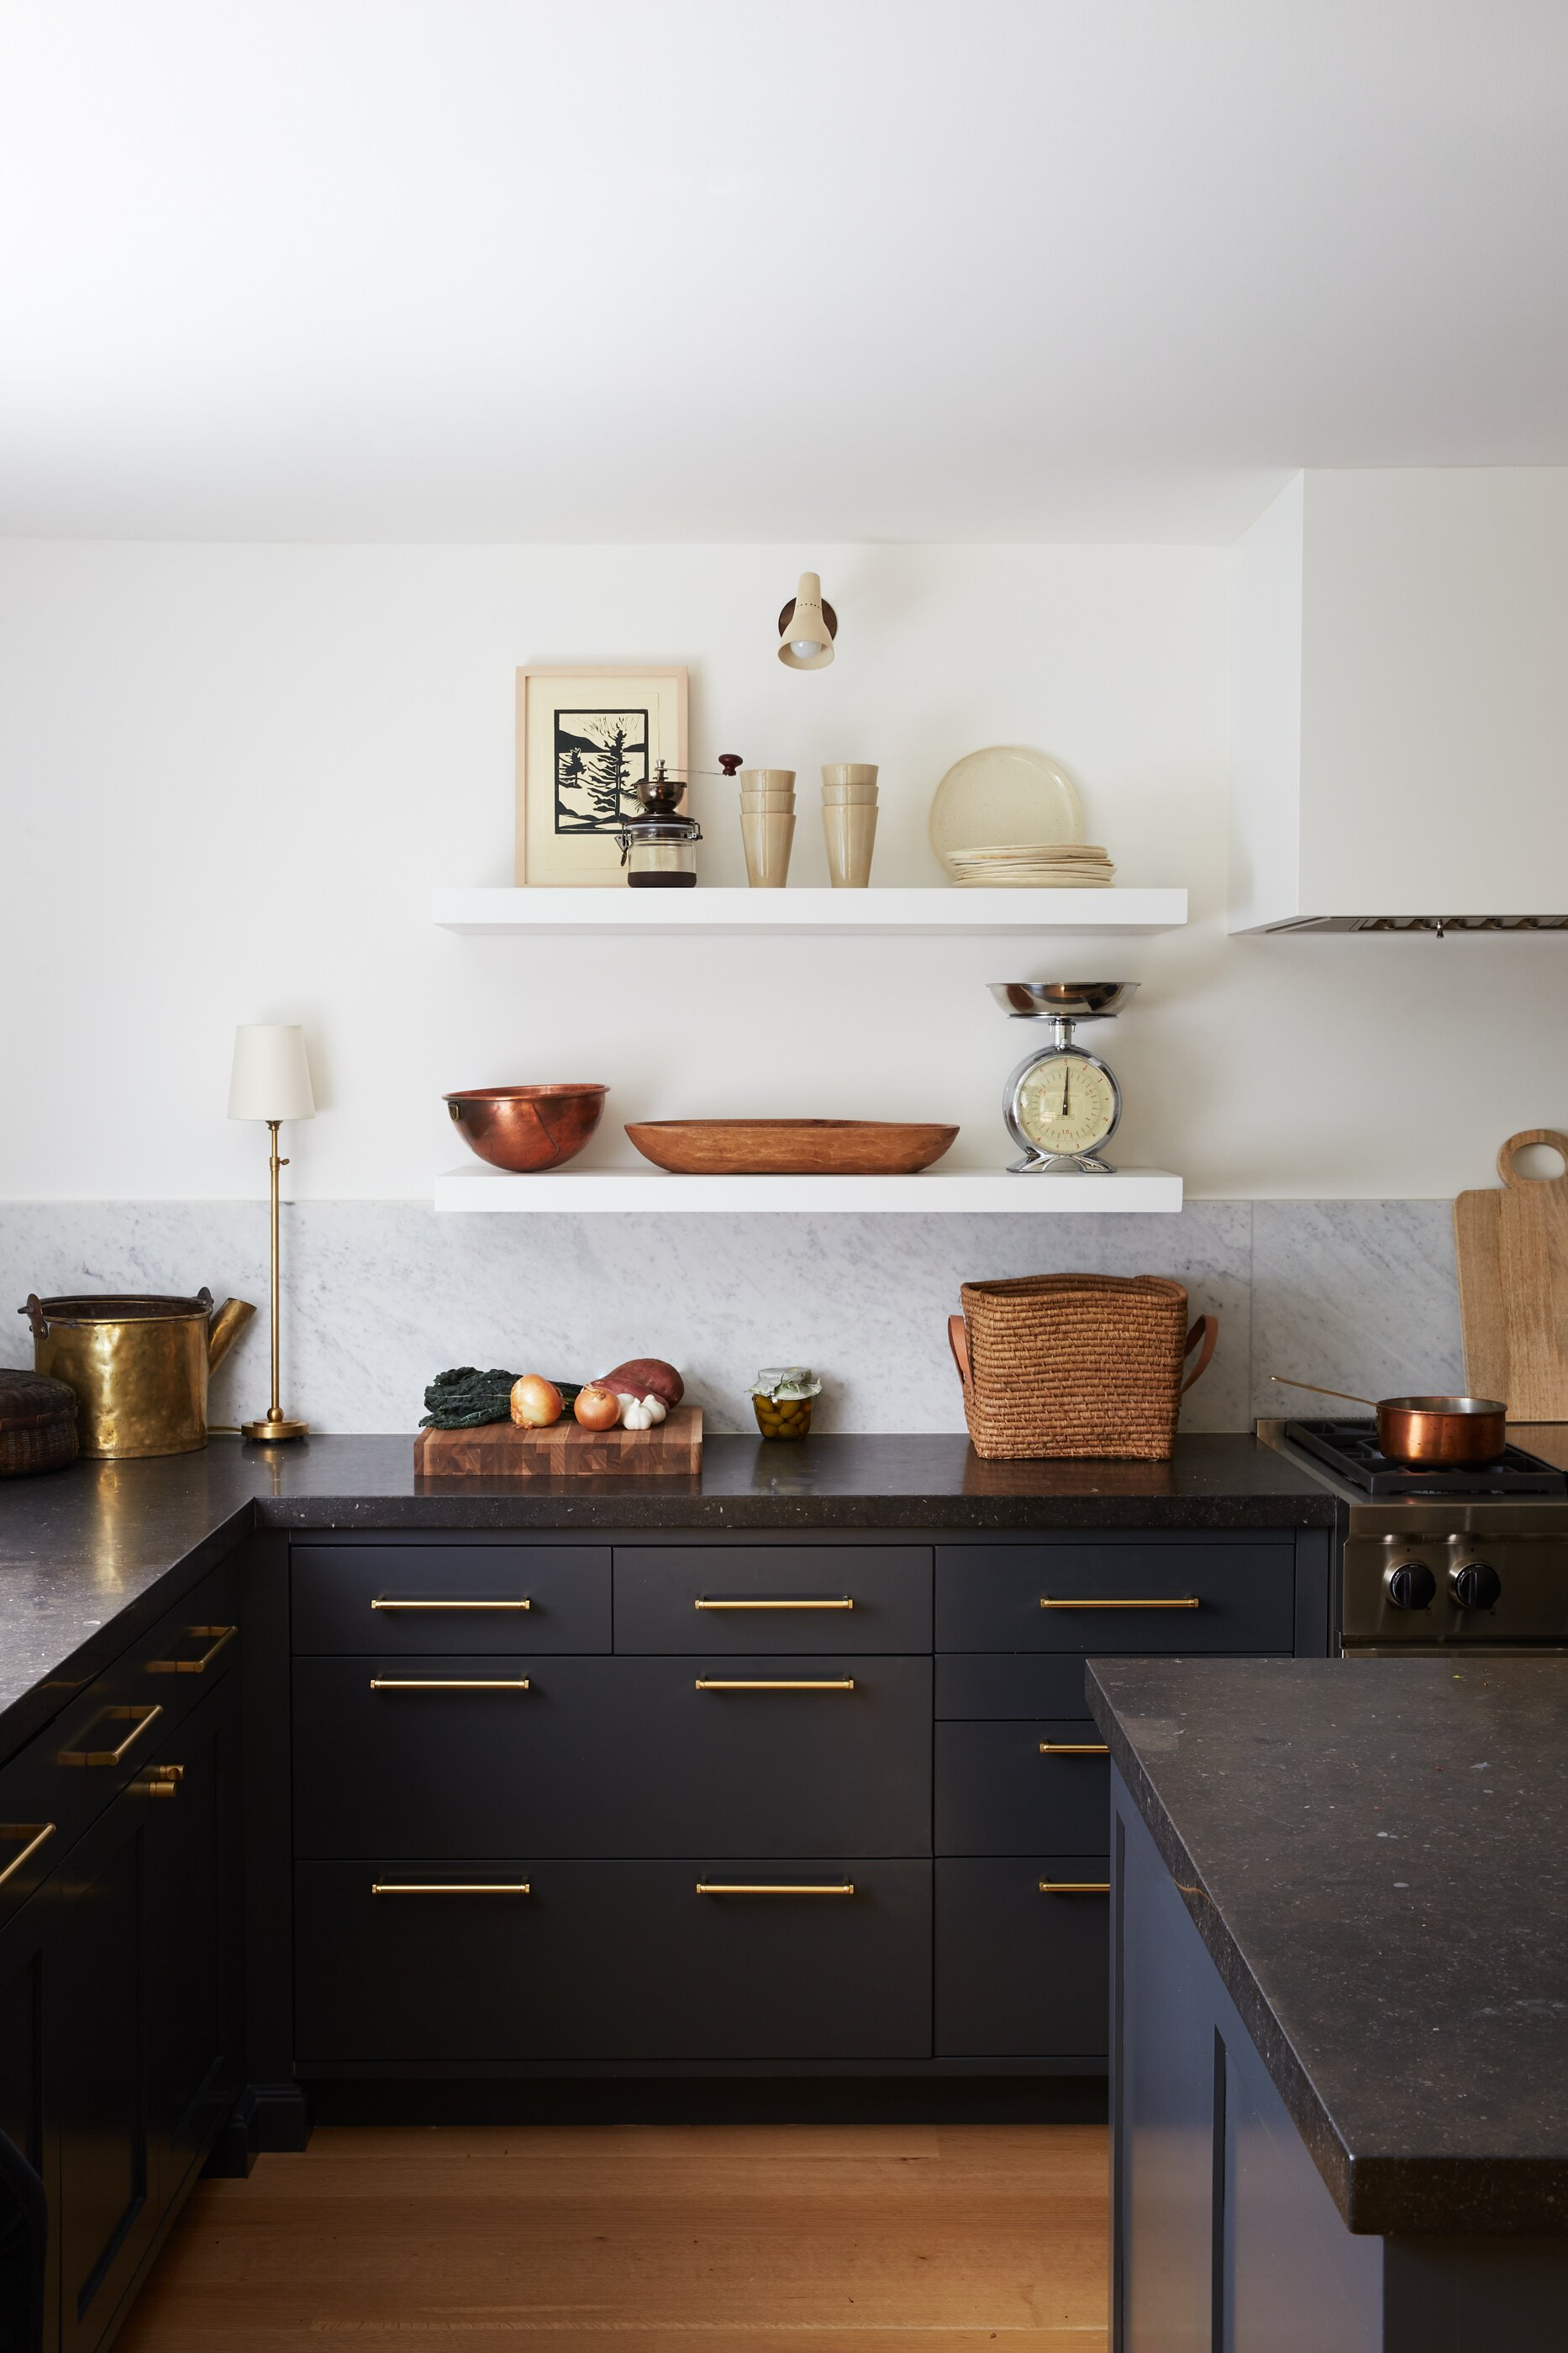 How to Pick Kitchen Paint Colors | Martha Stewart